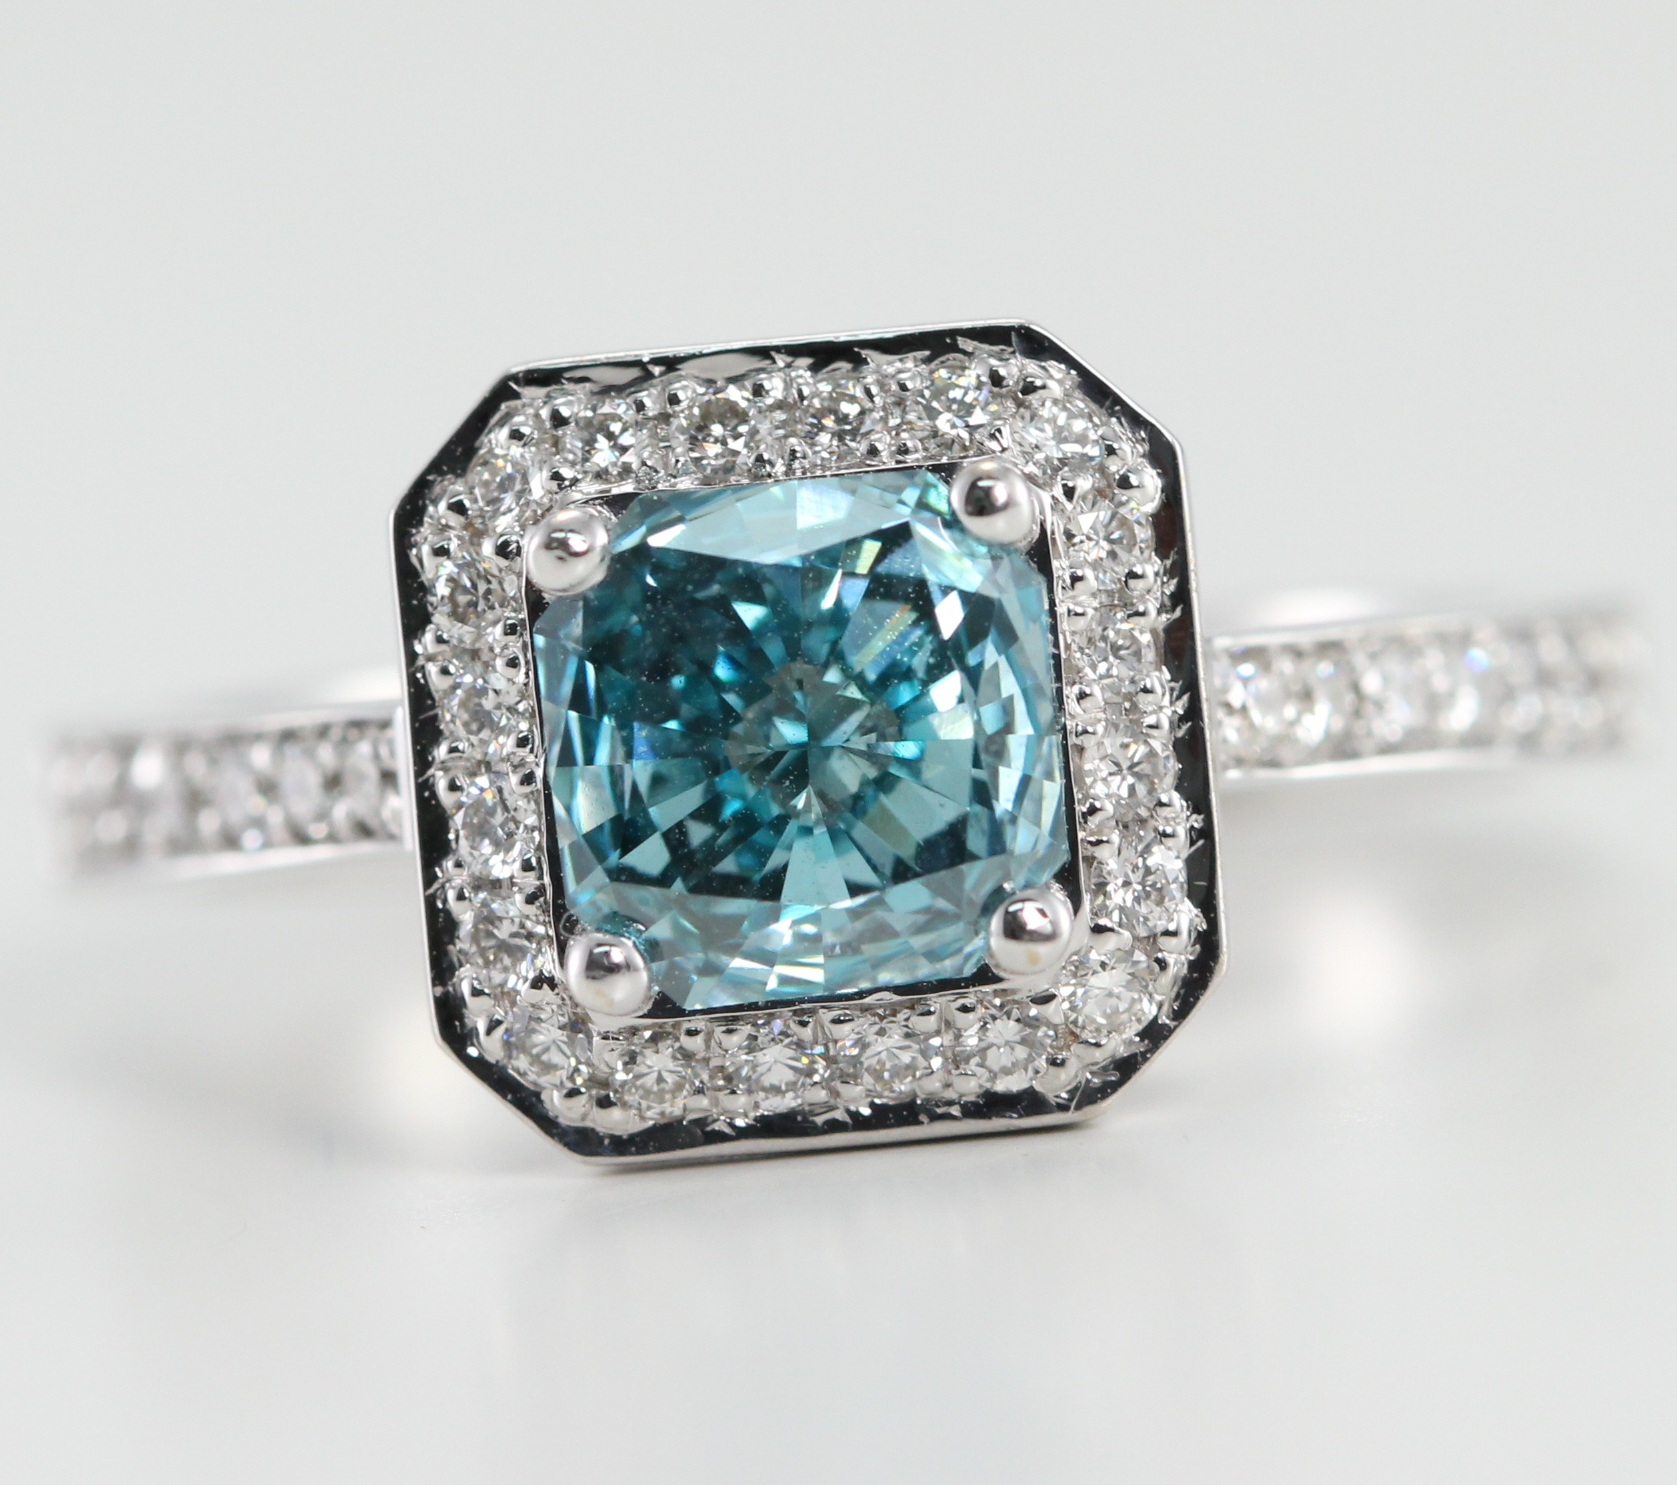 has who blue wanna pictures rings awesome ring else a see i diamond of colored wedding